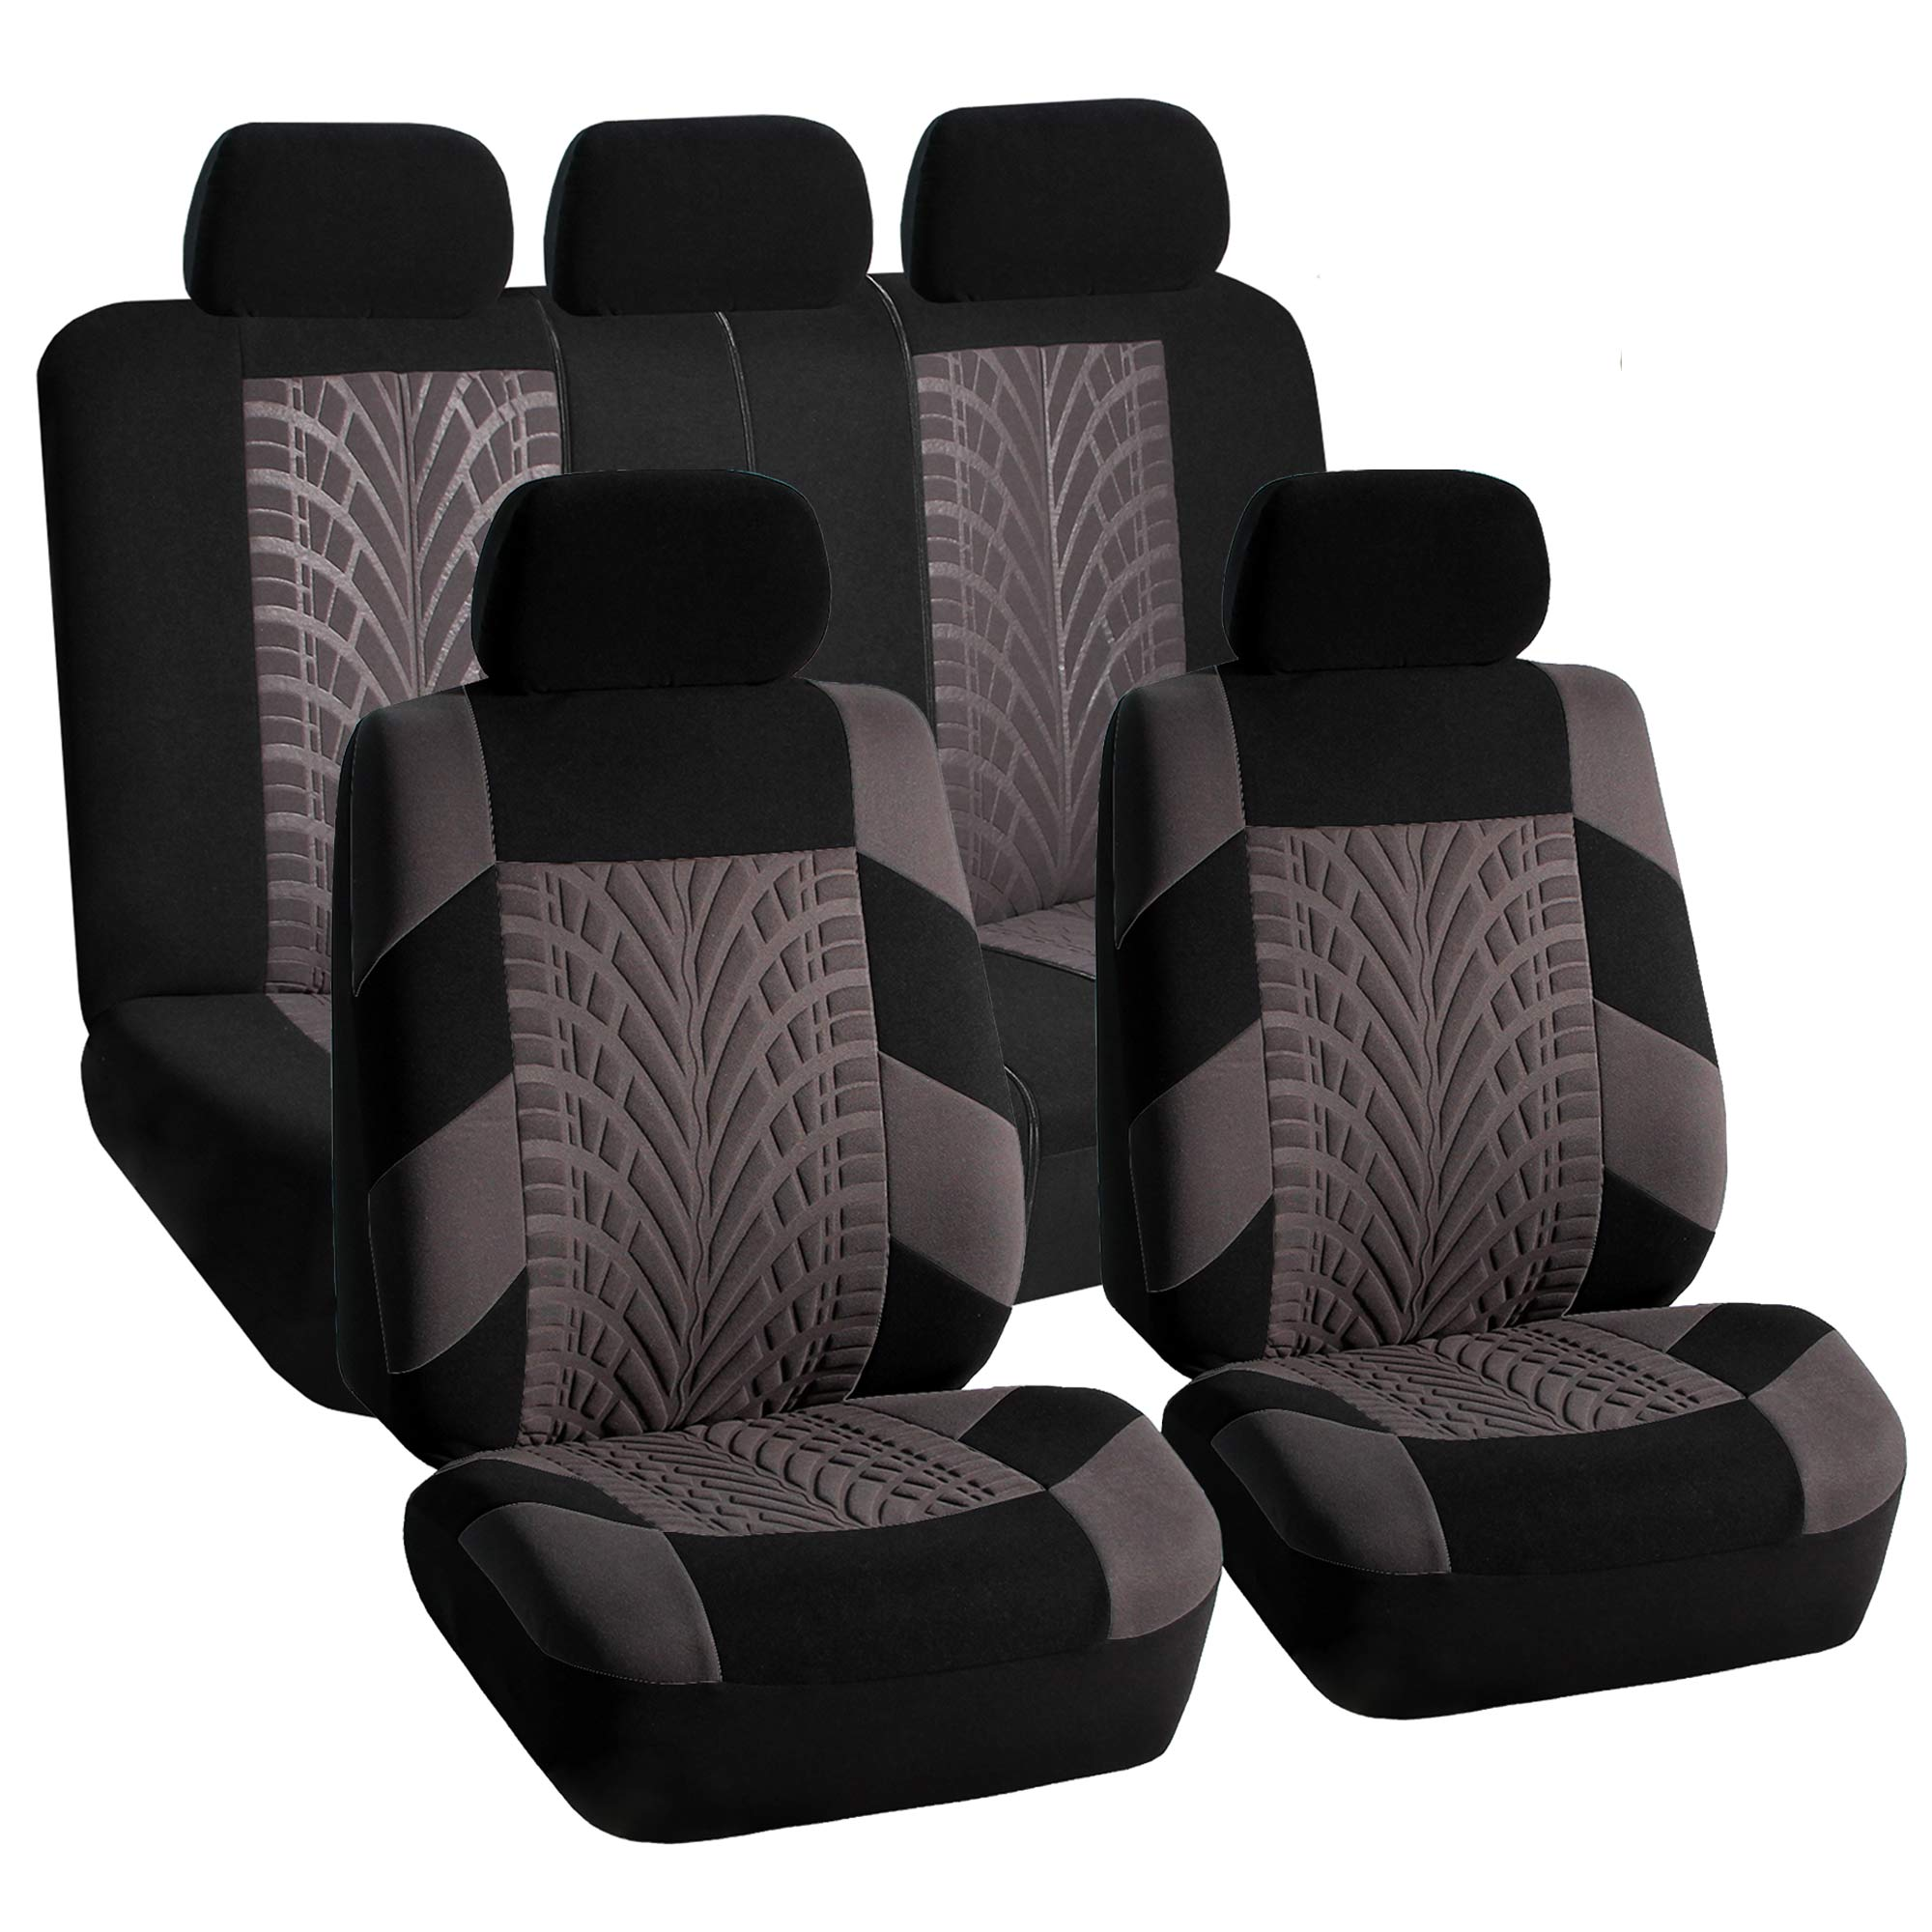 Gray Car Seat Covers Set For Auto W Floor Mat